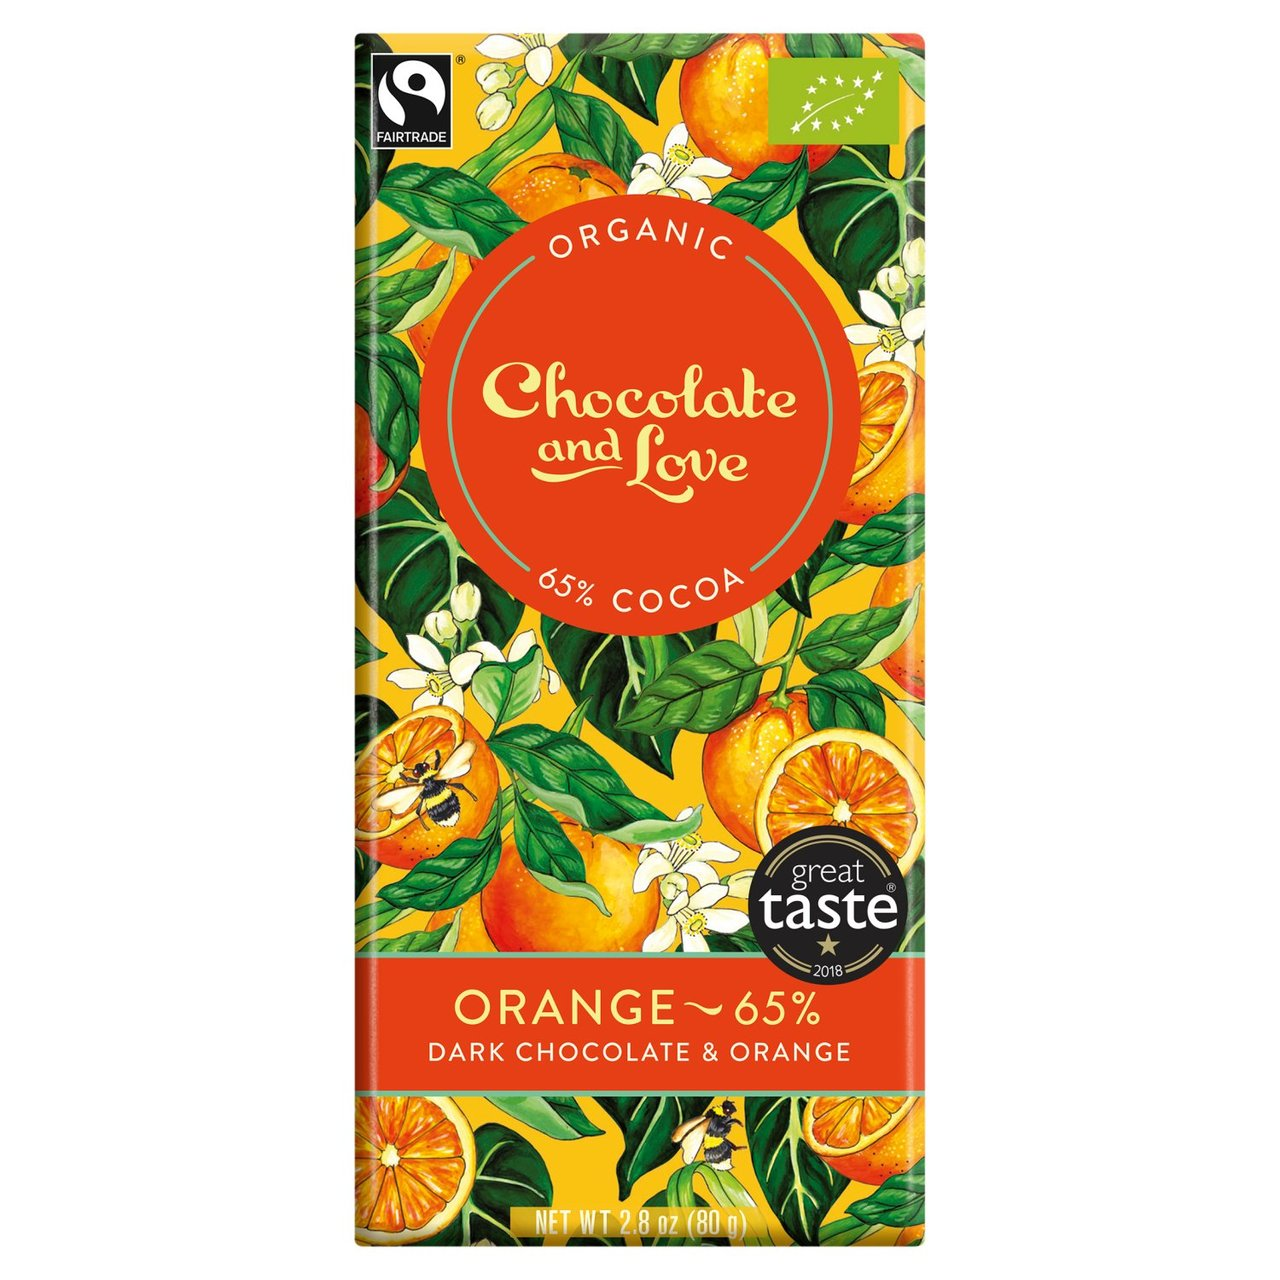 Orange Chocolate & Love Organic Fairtrade Chocolate Bar